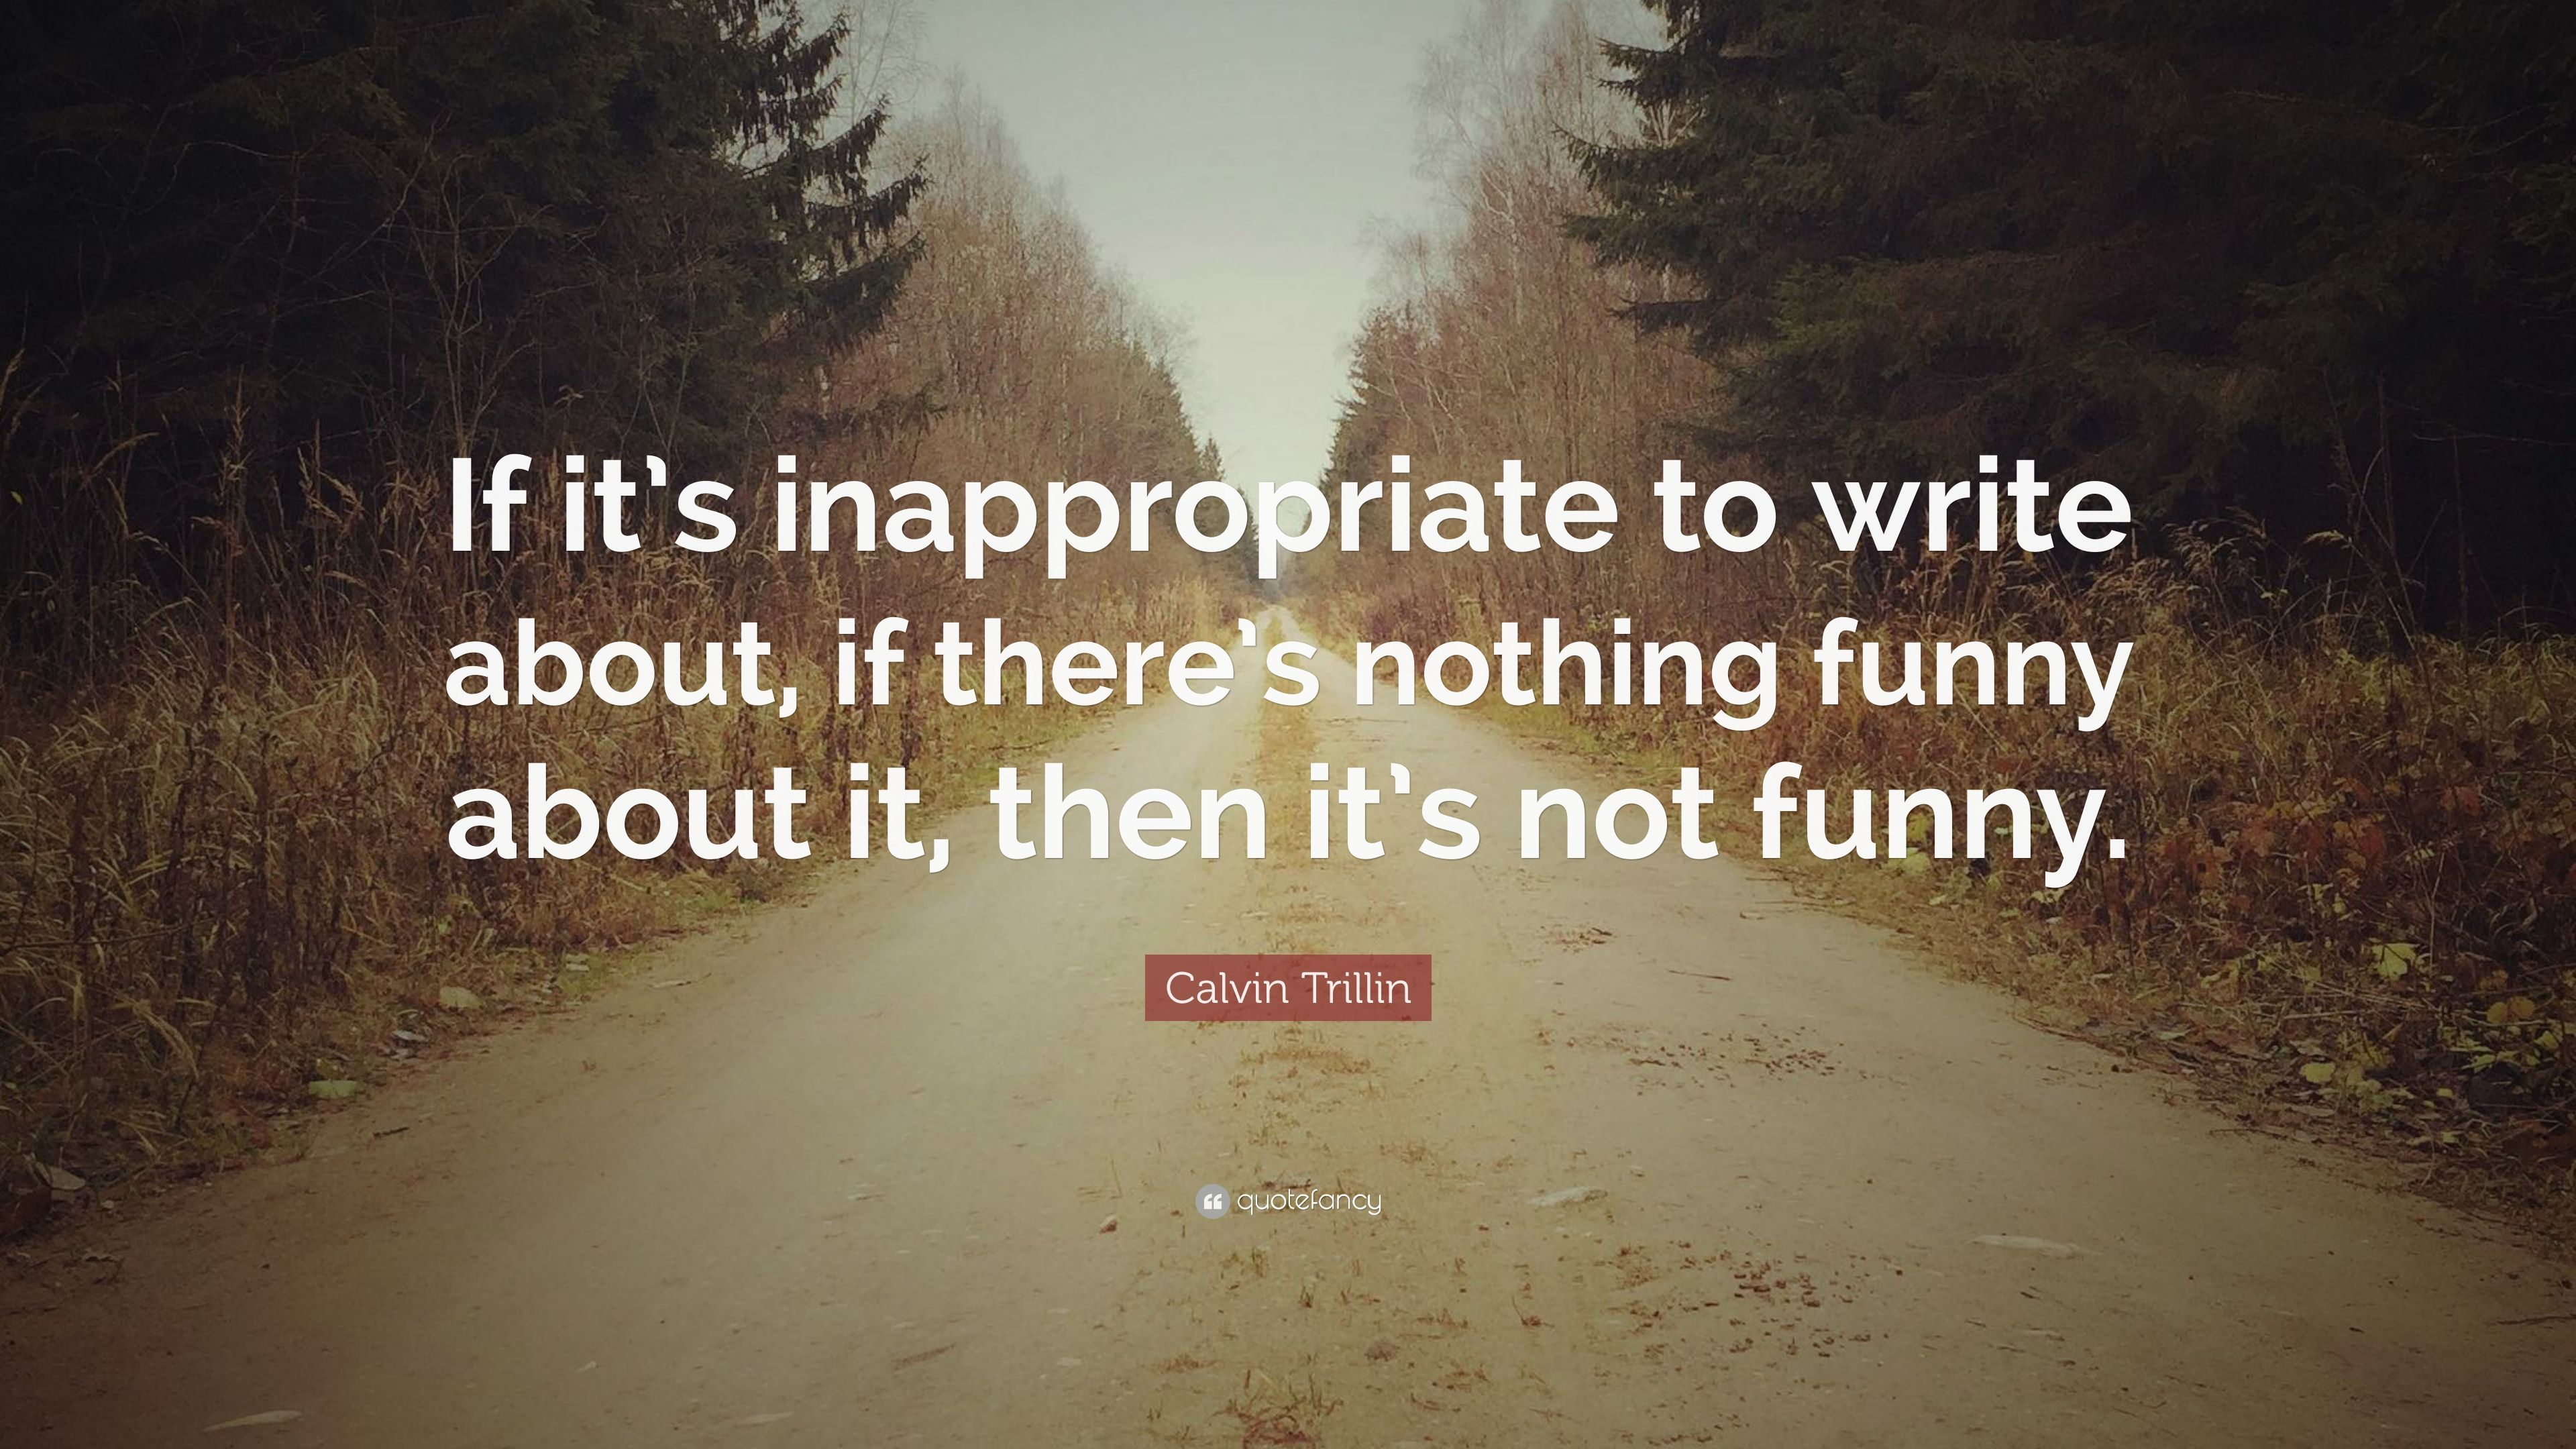 Calvin Trillin Quote If Its Inappropriate To Write About Theres Nothing Funny